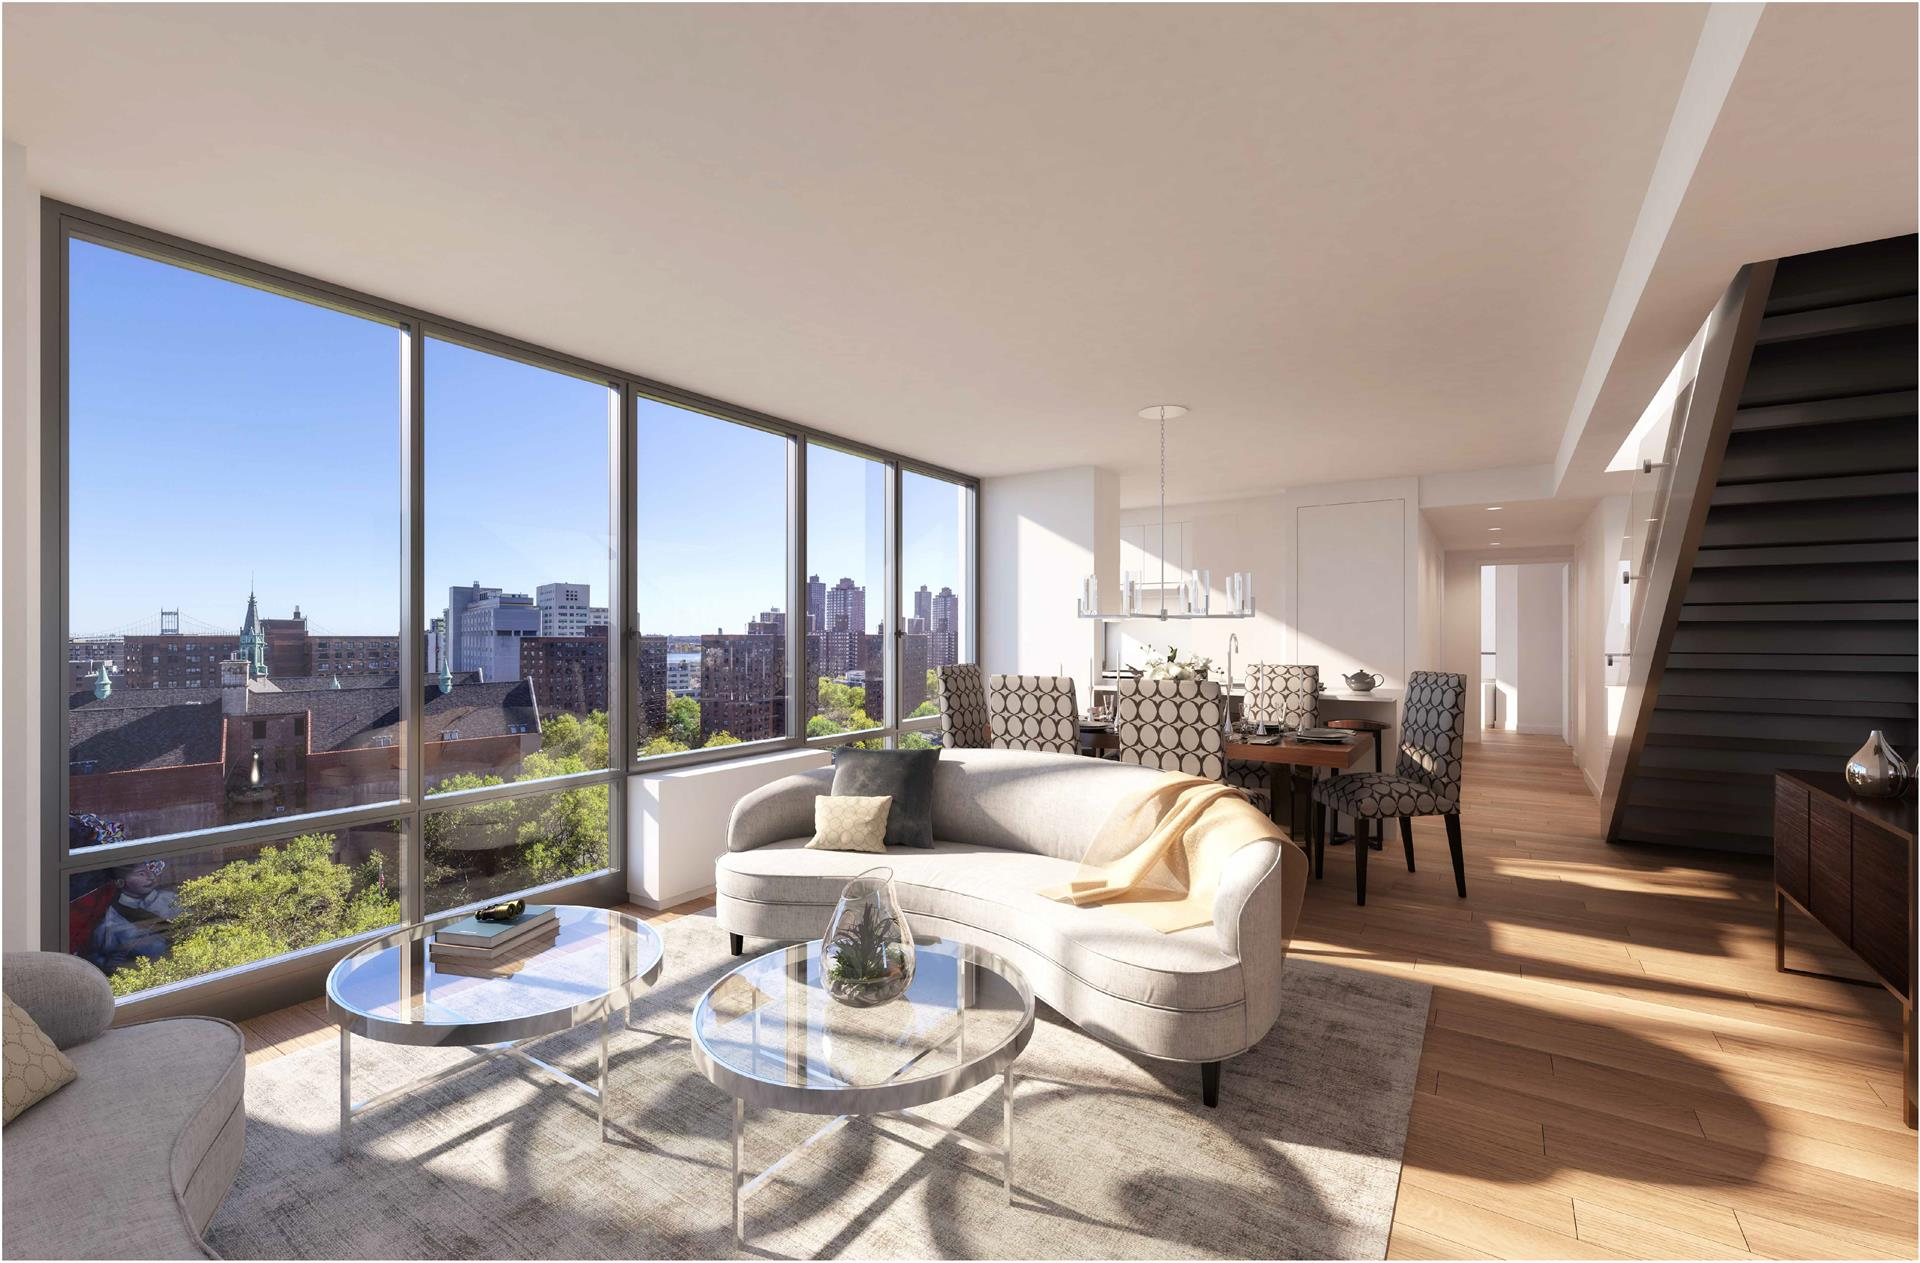 New york penthouse for rent the modern penthouse cvb for New york penthouse rent